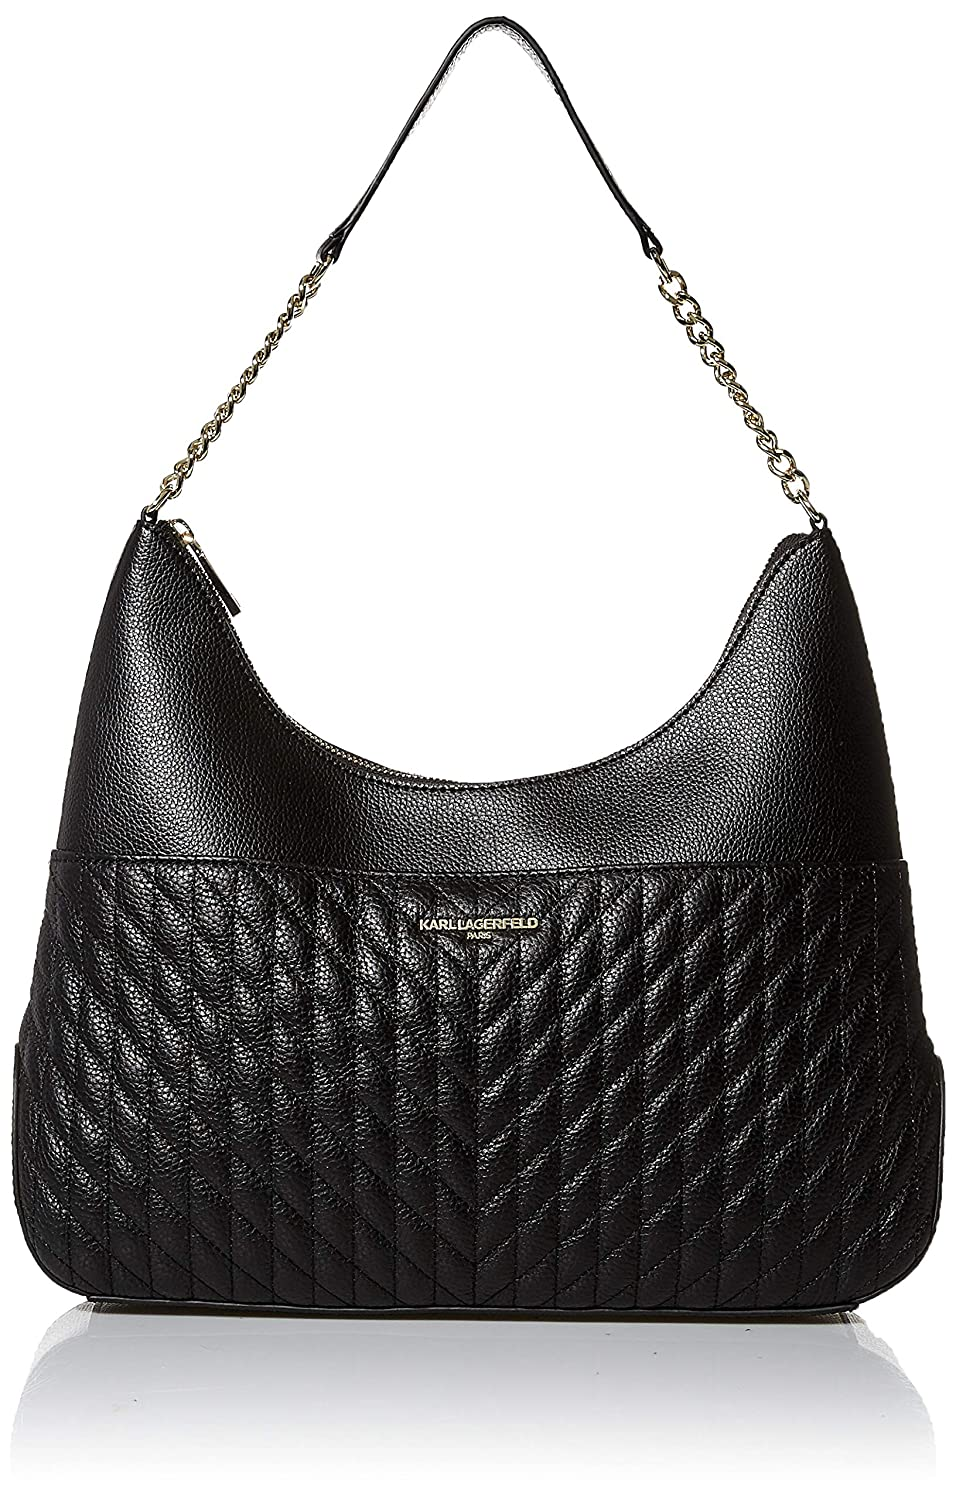 Black gold Karl Lagerfeld Paris Janelle Hobo